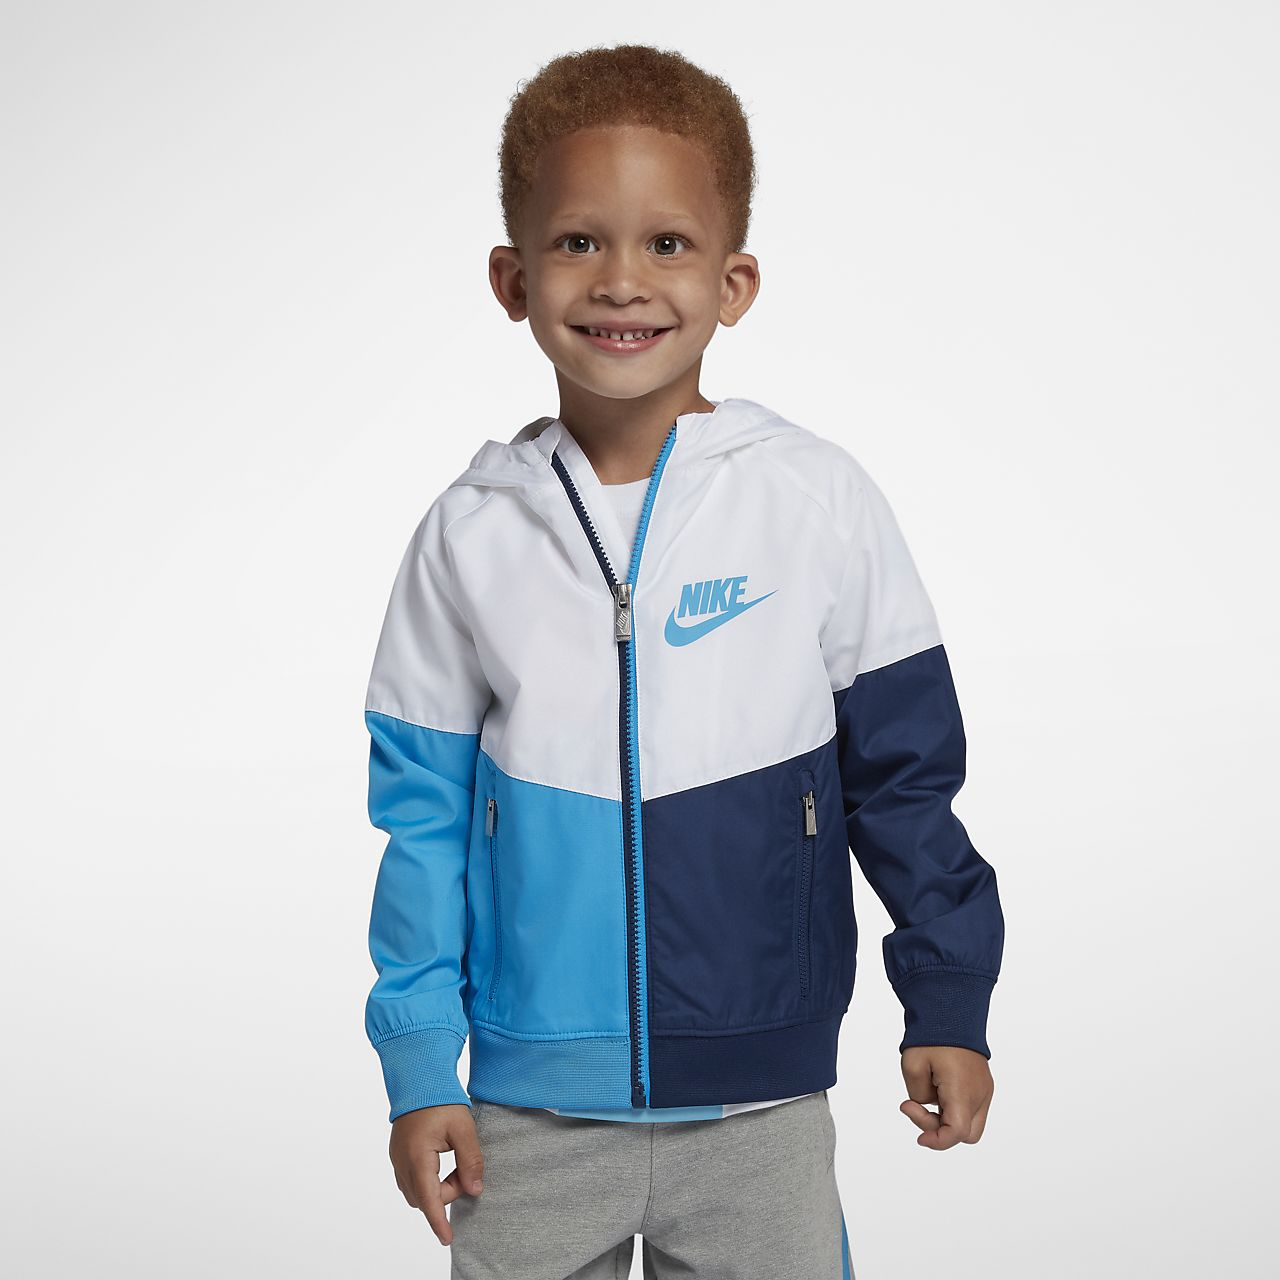 Jacken Kinder Schwarz Nike Windrunner Jacket Children